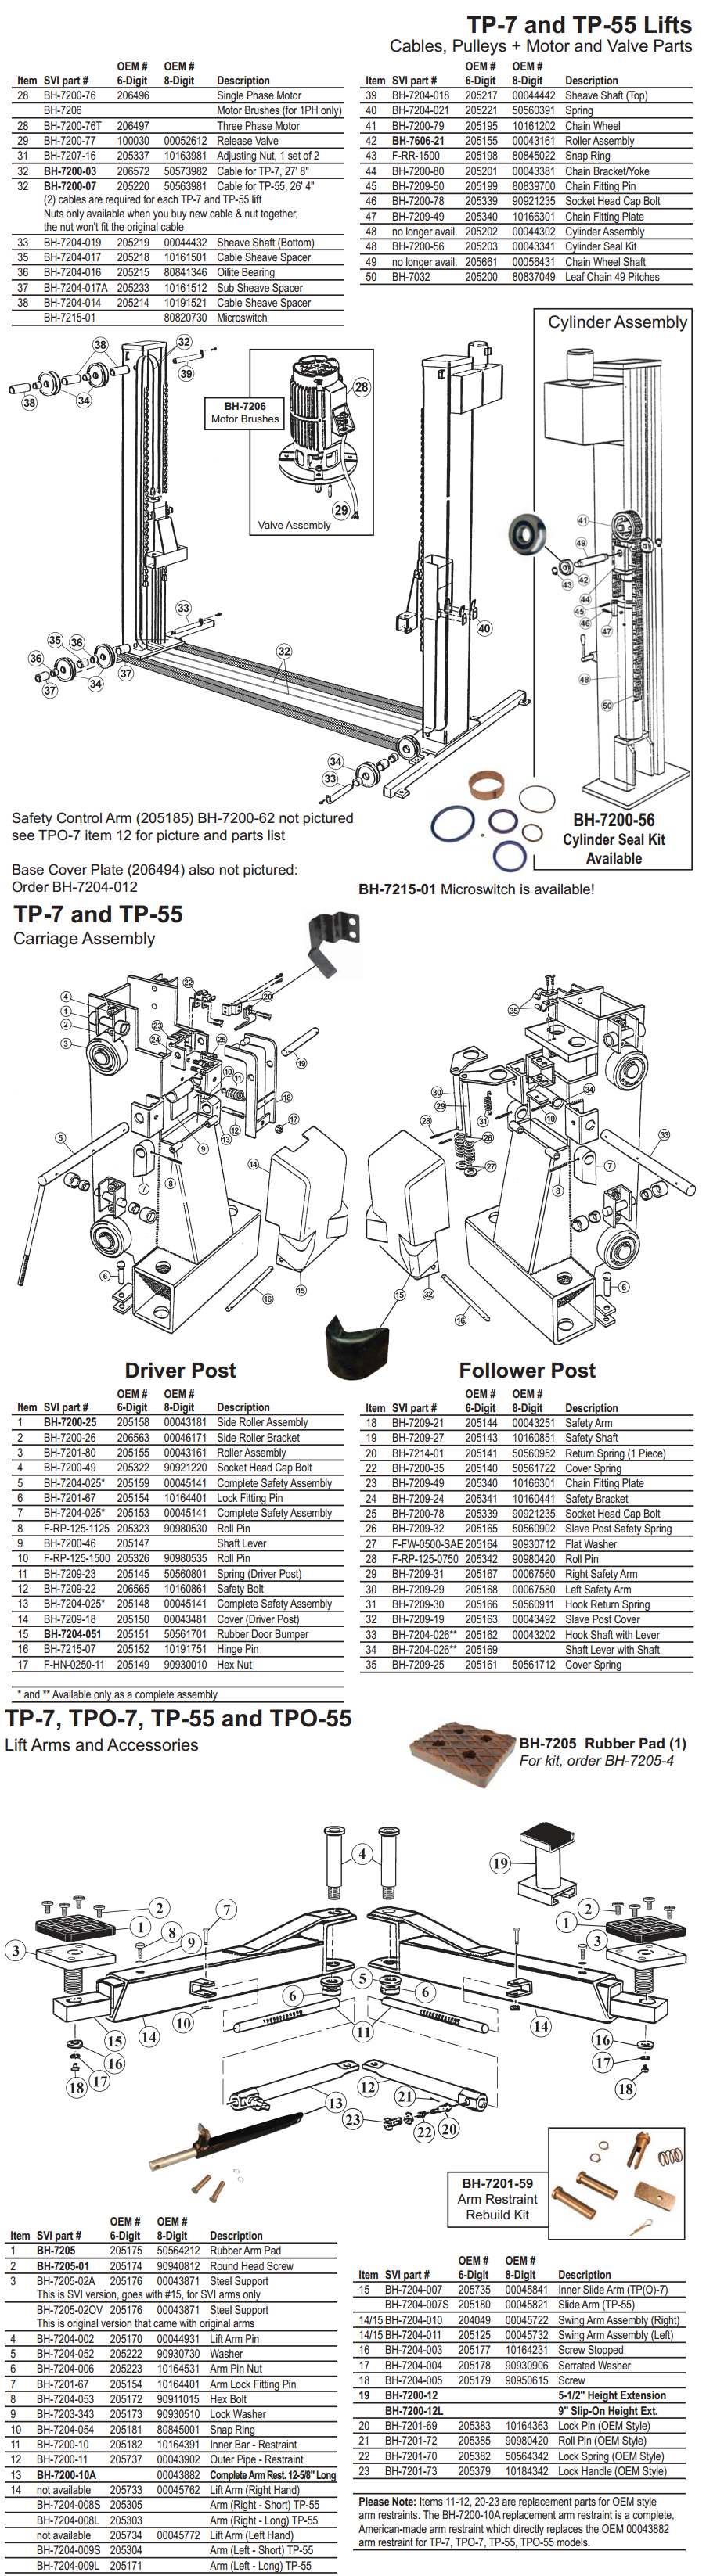 tp 7 tp 55 parts diagram for benwil tp7 benwil lift wiring diagram at eliteediting.co